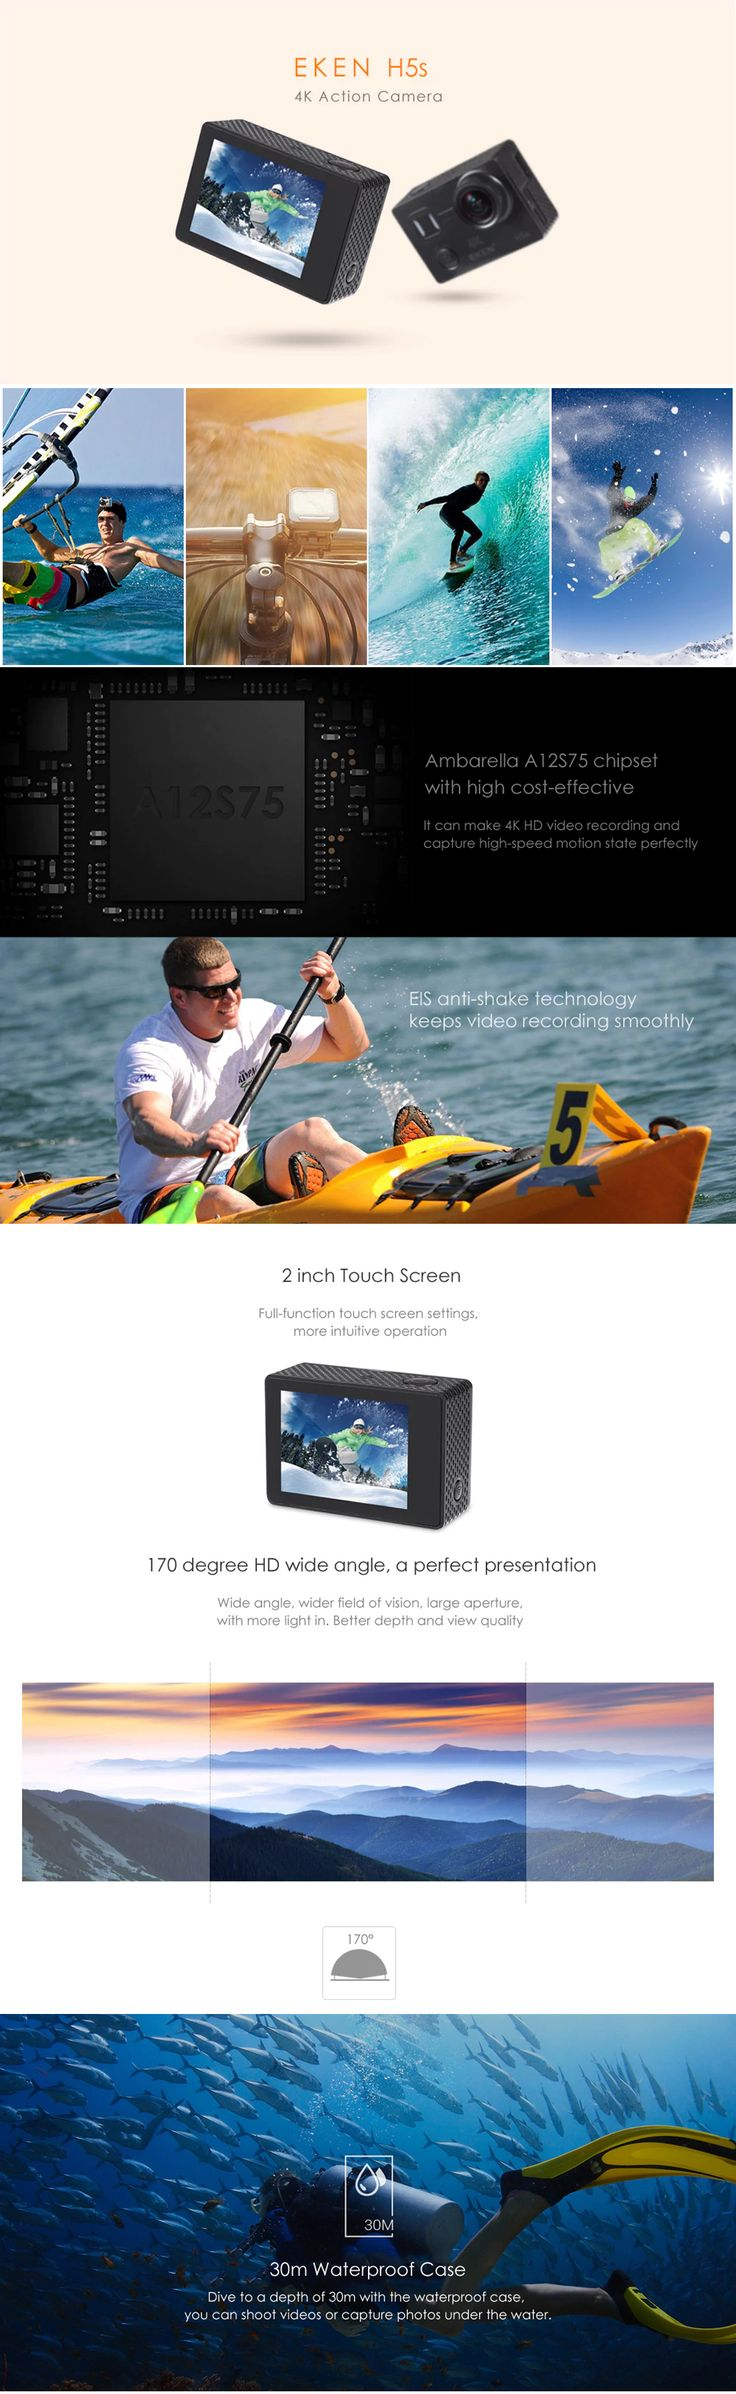 The EKEN H5S 4K action camera will bring you ultra high-definition photos and smooth videos with EIS anti-shake technology, perfect for cycling, skiing, surfing, diving, climbing, etc. WiFi function and 2.4G remote allow you to self-capture in a more convenient way. Records every wonderful moment in your life!